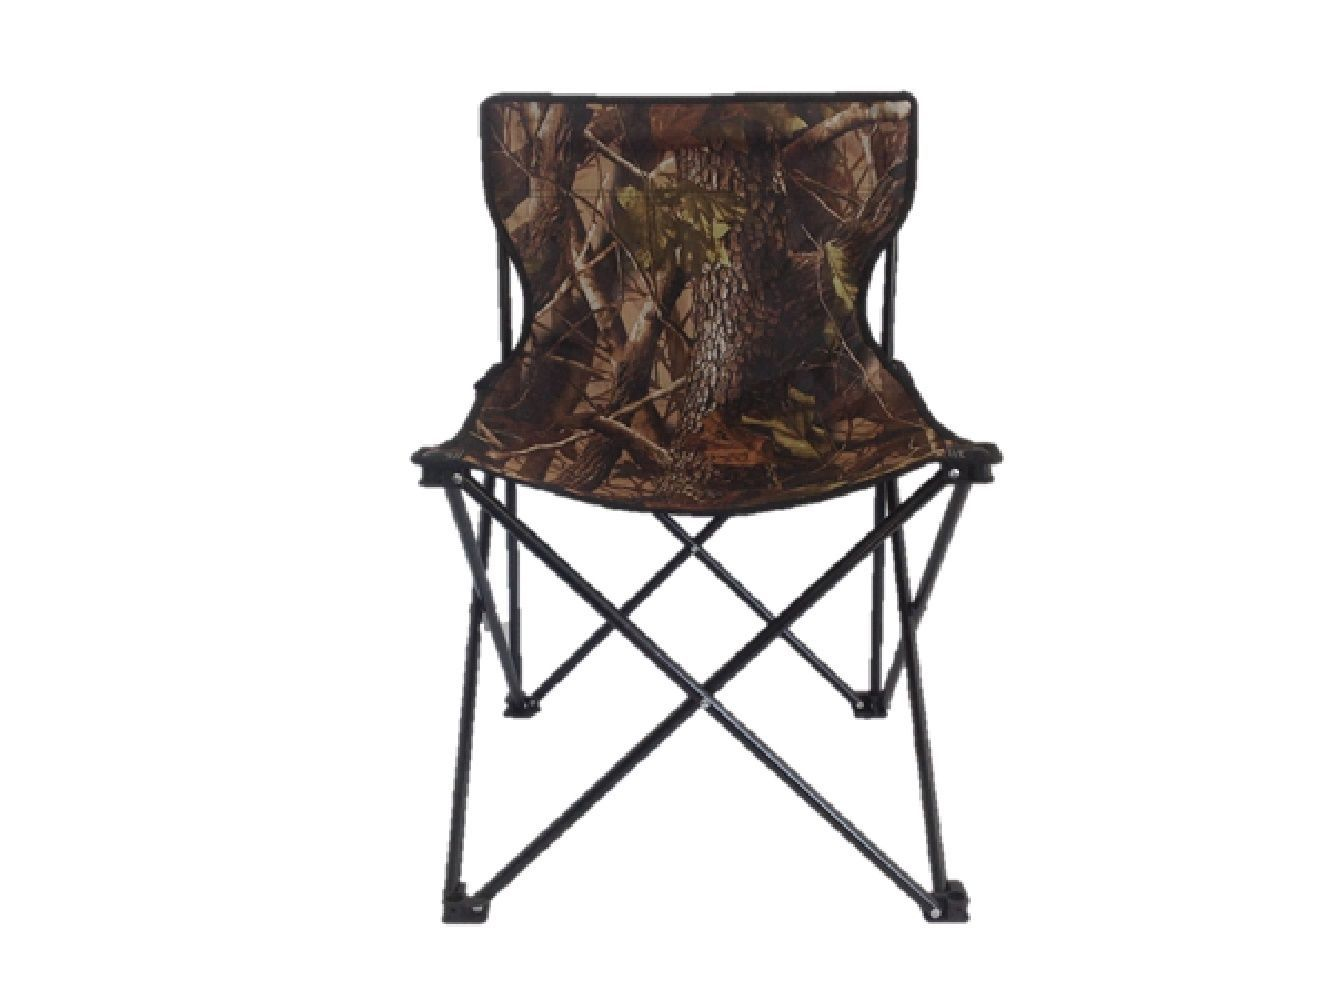 Realtree Chair Camo Realtree Folding Chair Portable Foidaway Fishing